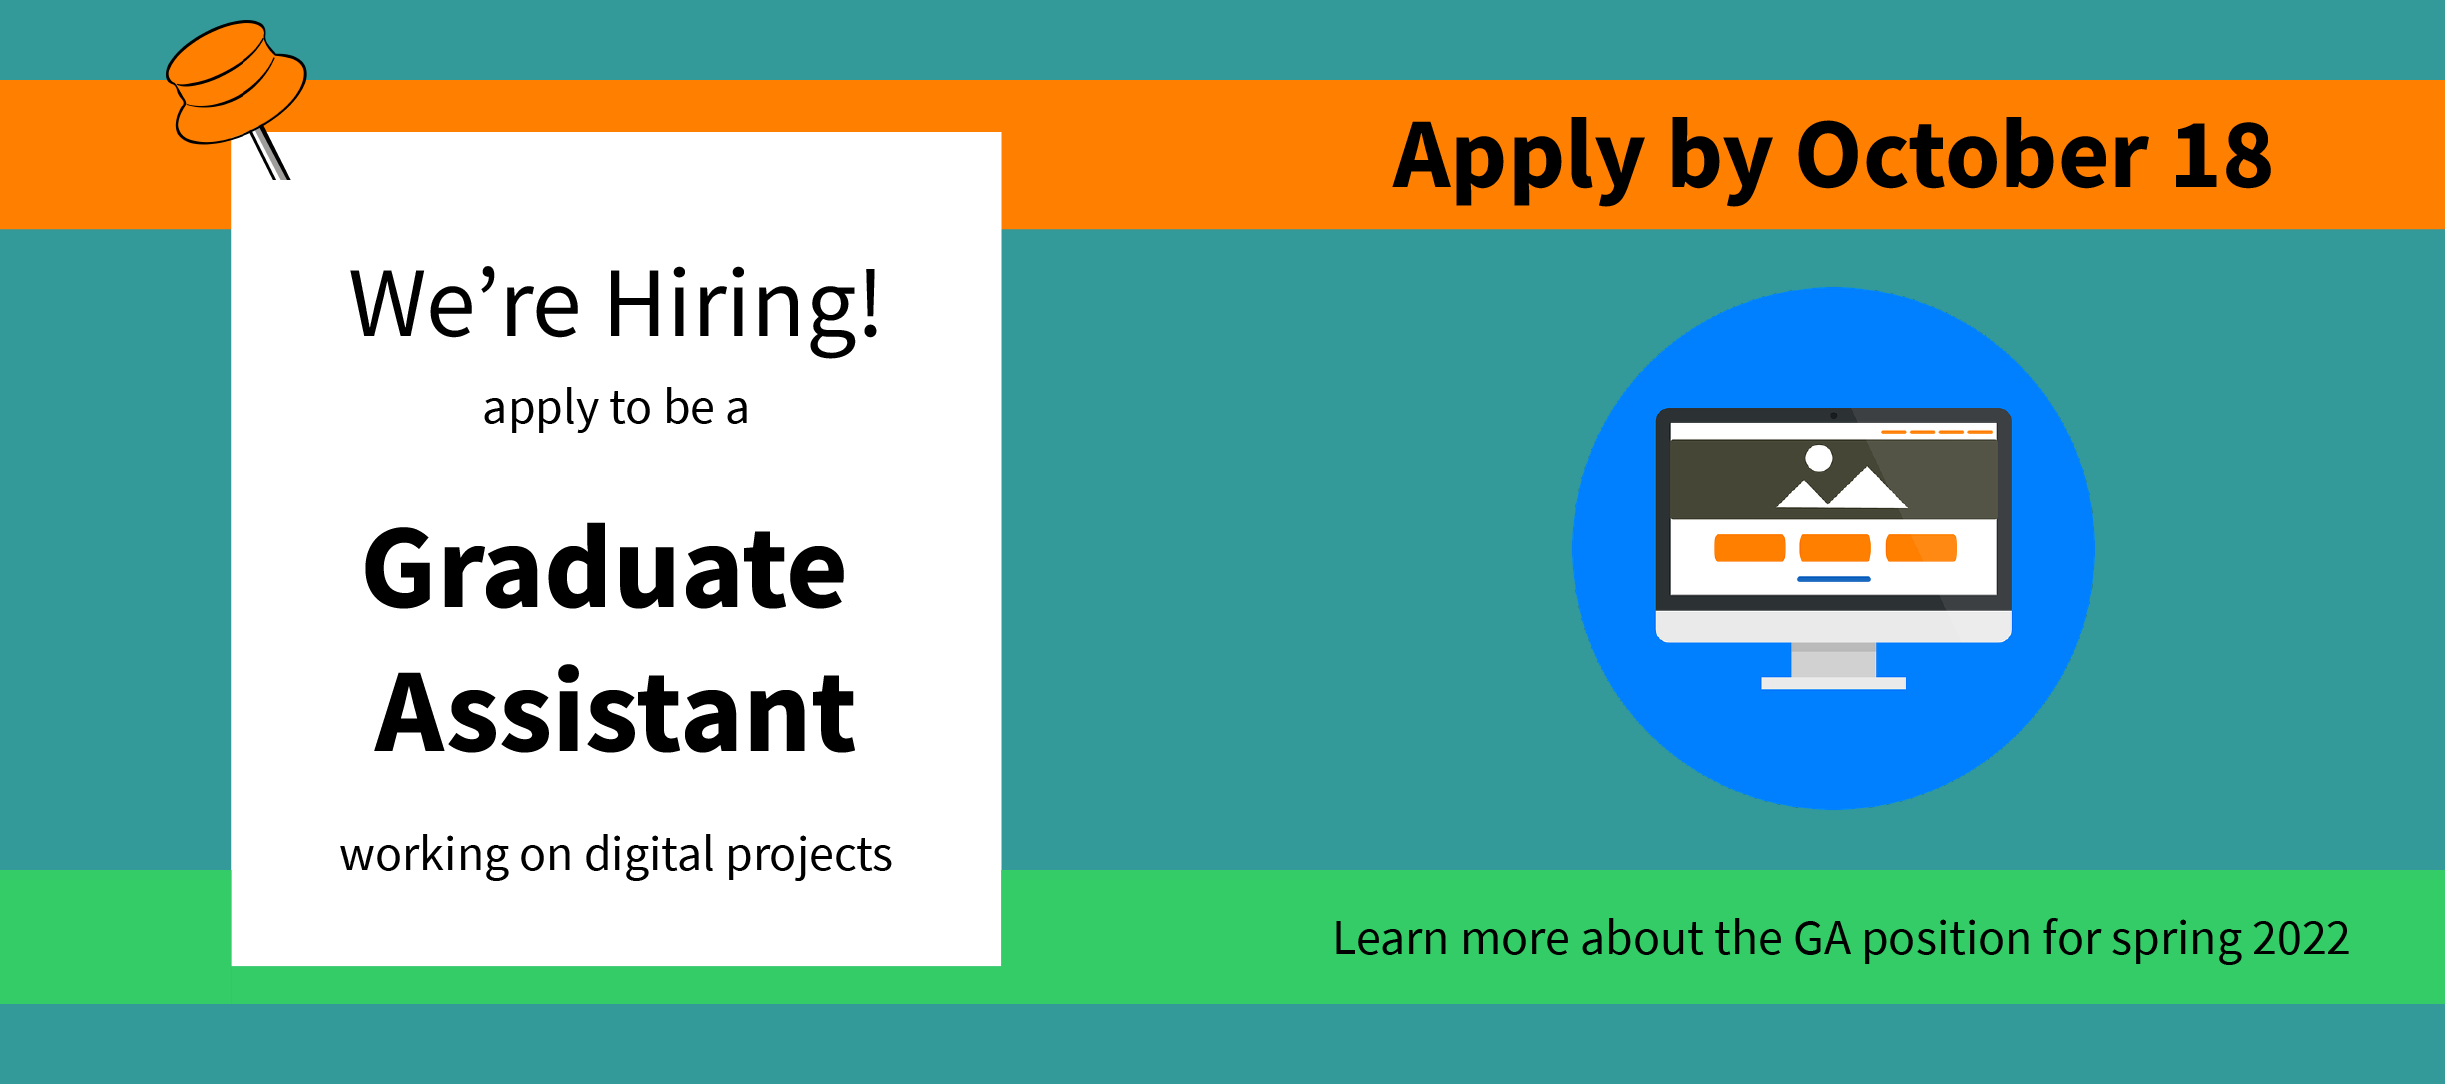 We're hiring. Apply to be a graduate assistant working on digital projects. Apply by October 18. Learn more about the graduate assistant position for spring 2022.